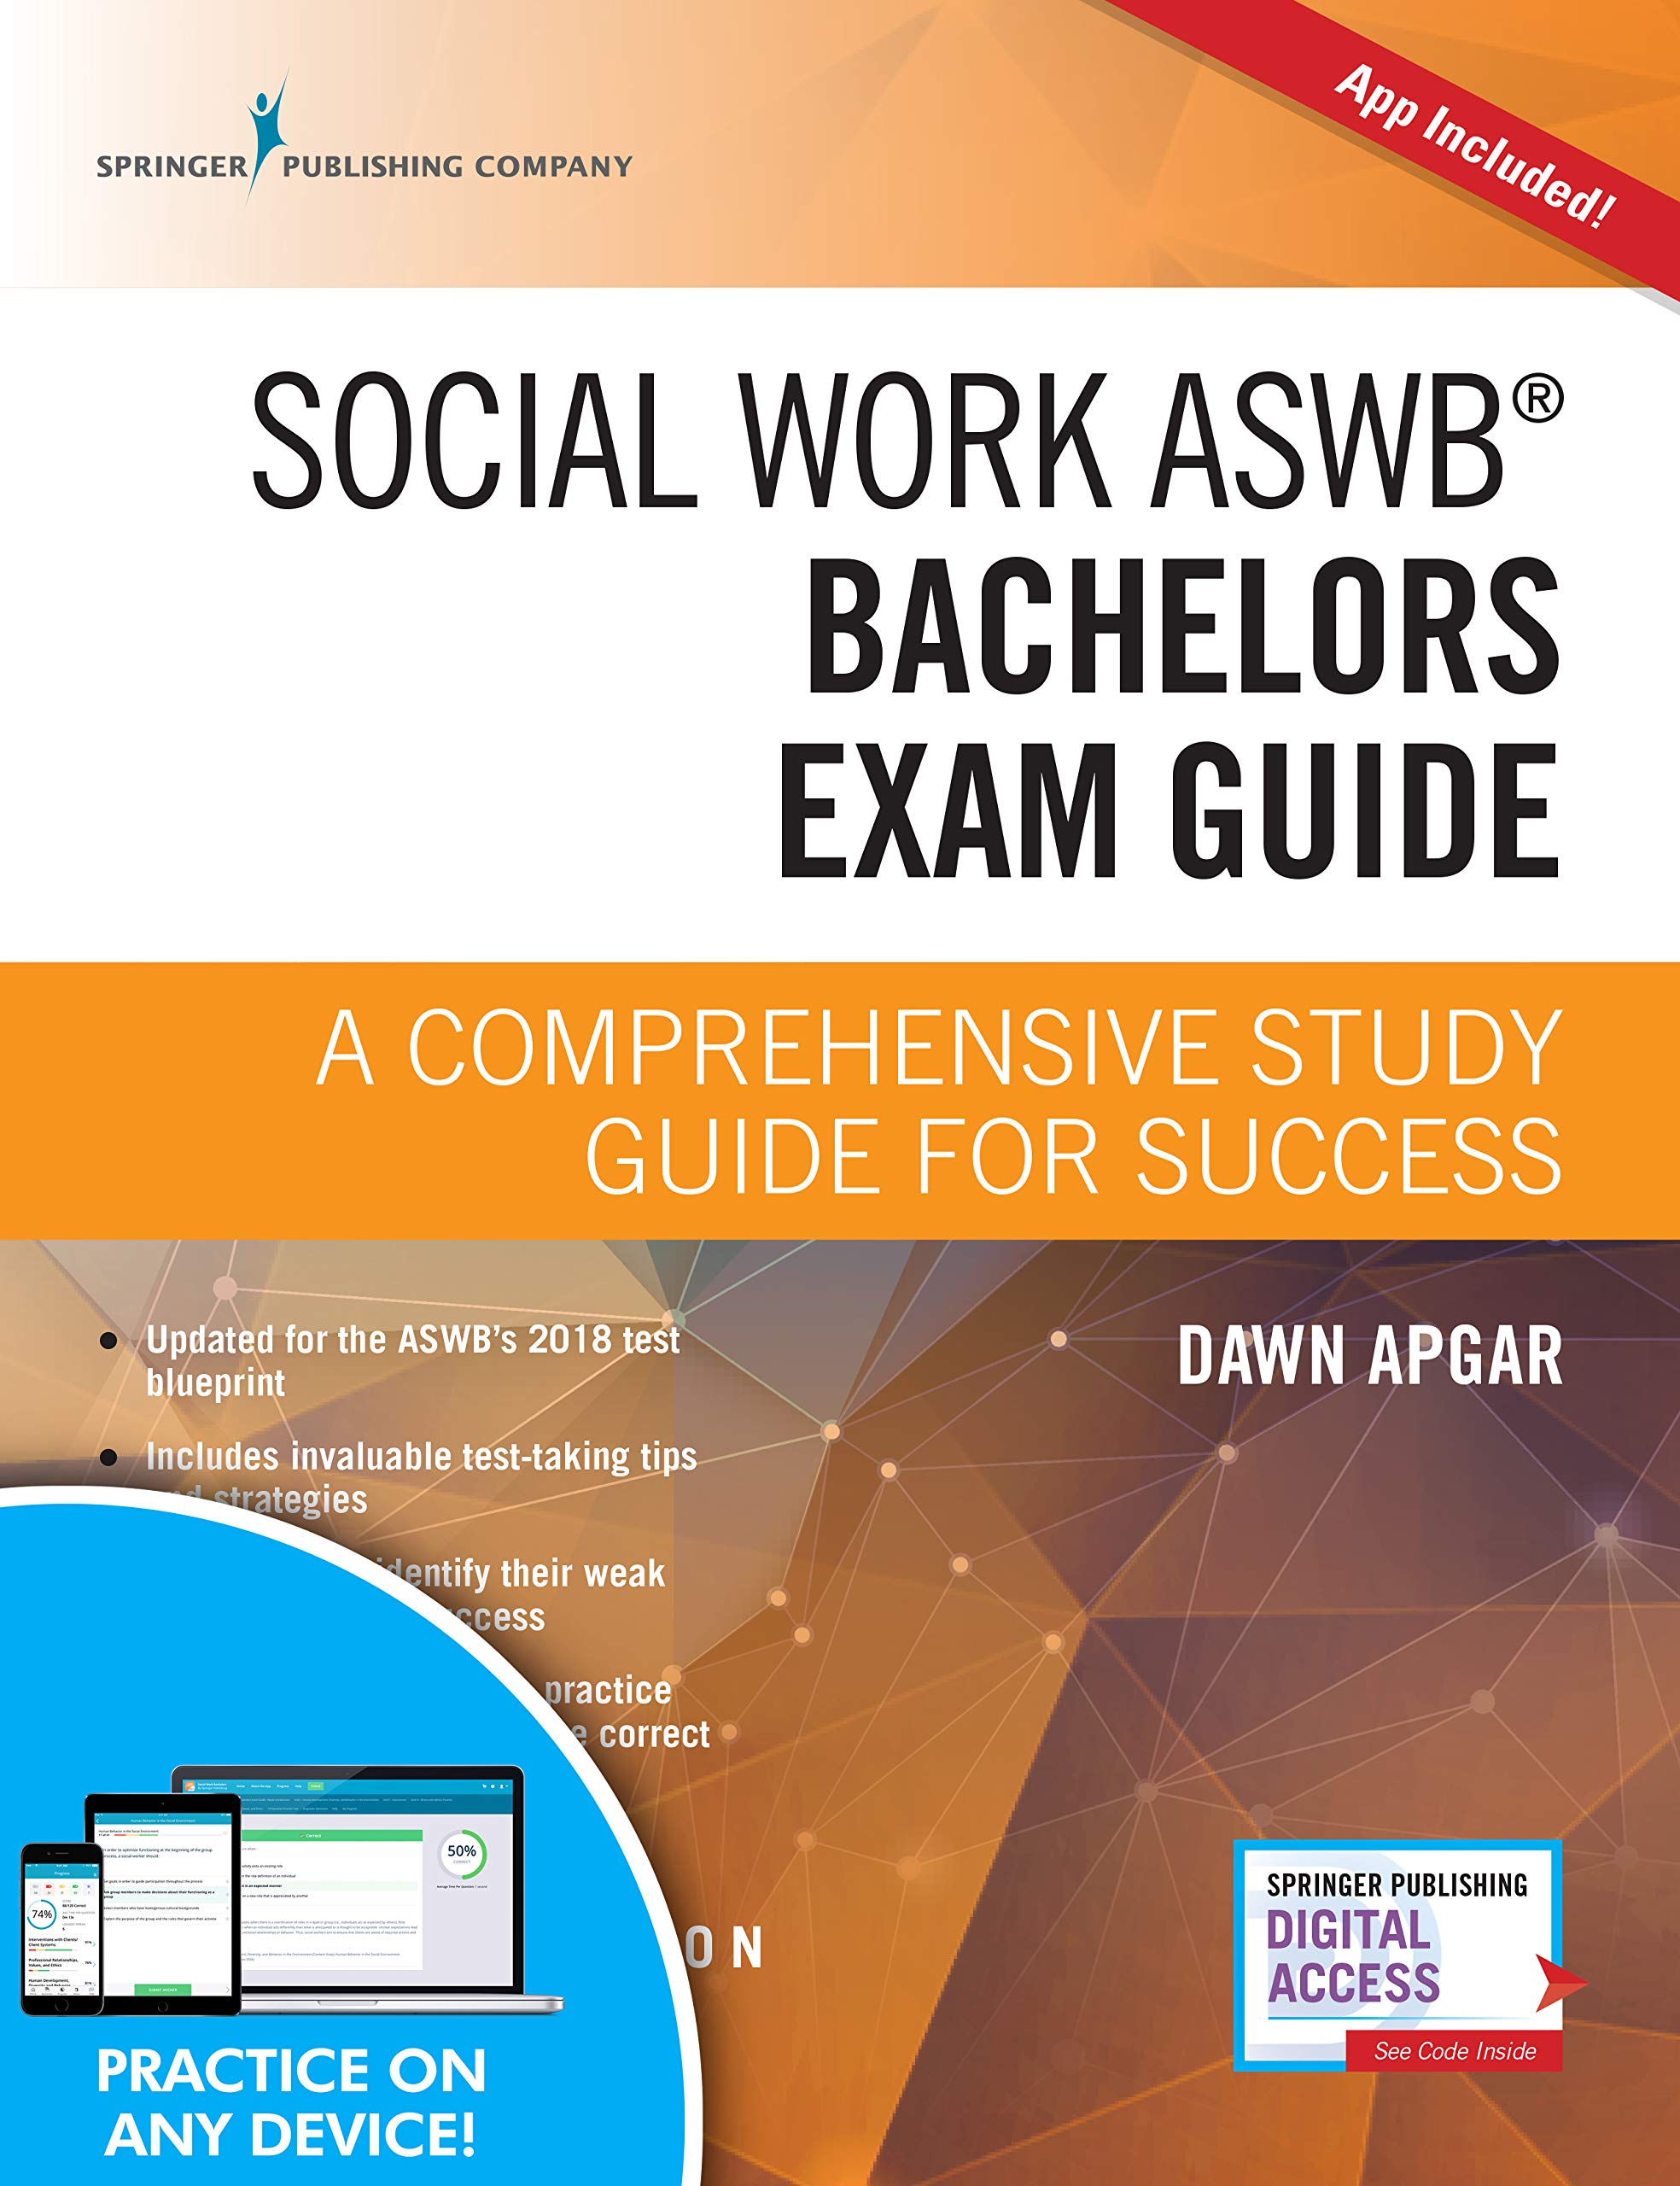 Social Work ASWB Bachelors Exam Guide, Second Edition: A Comprehensive Study Guide for Success - Book and Free App - Updated ASWB Study Guide Book with a Full ASWB Practice Test by Springer Publishing Company